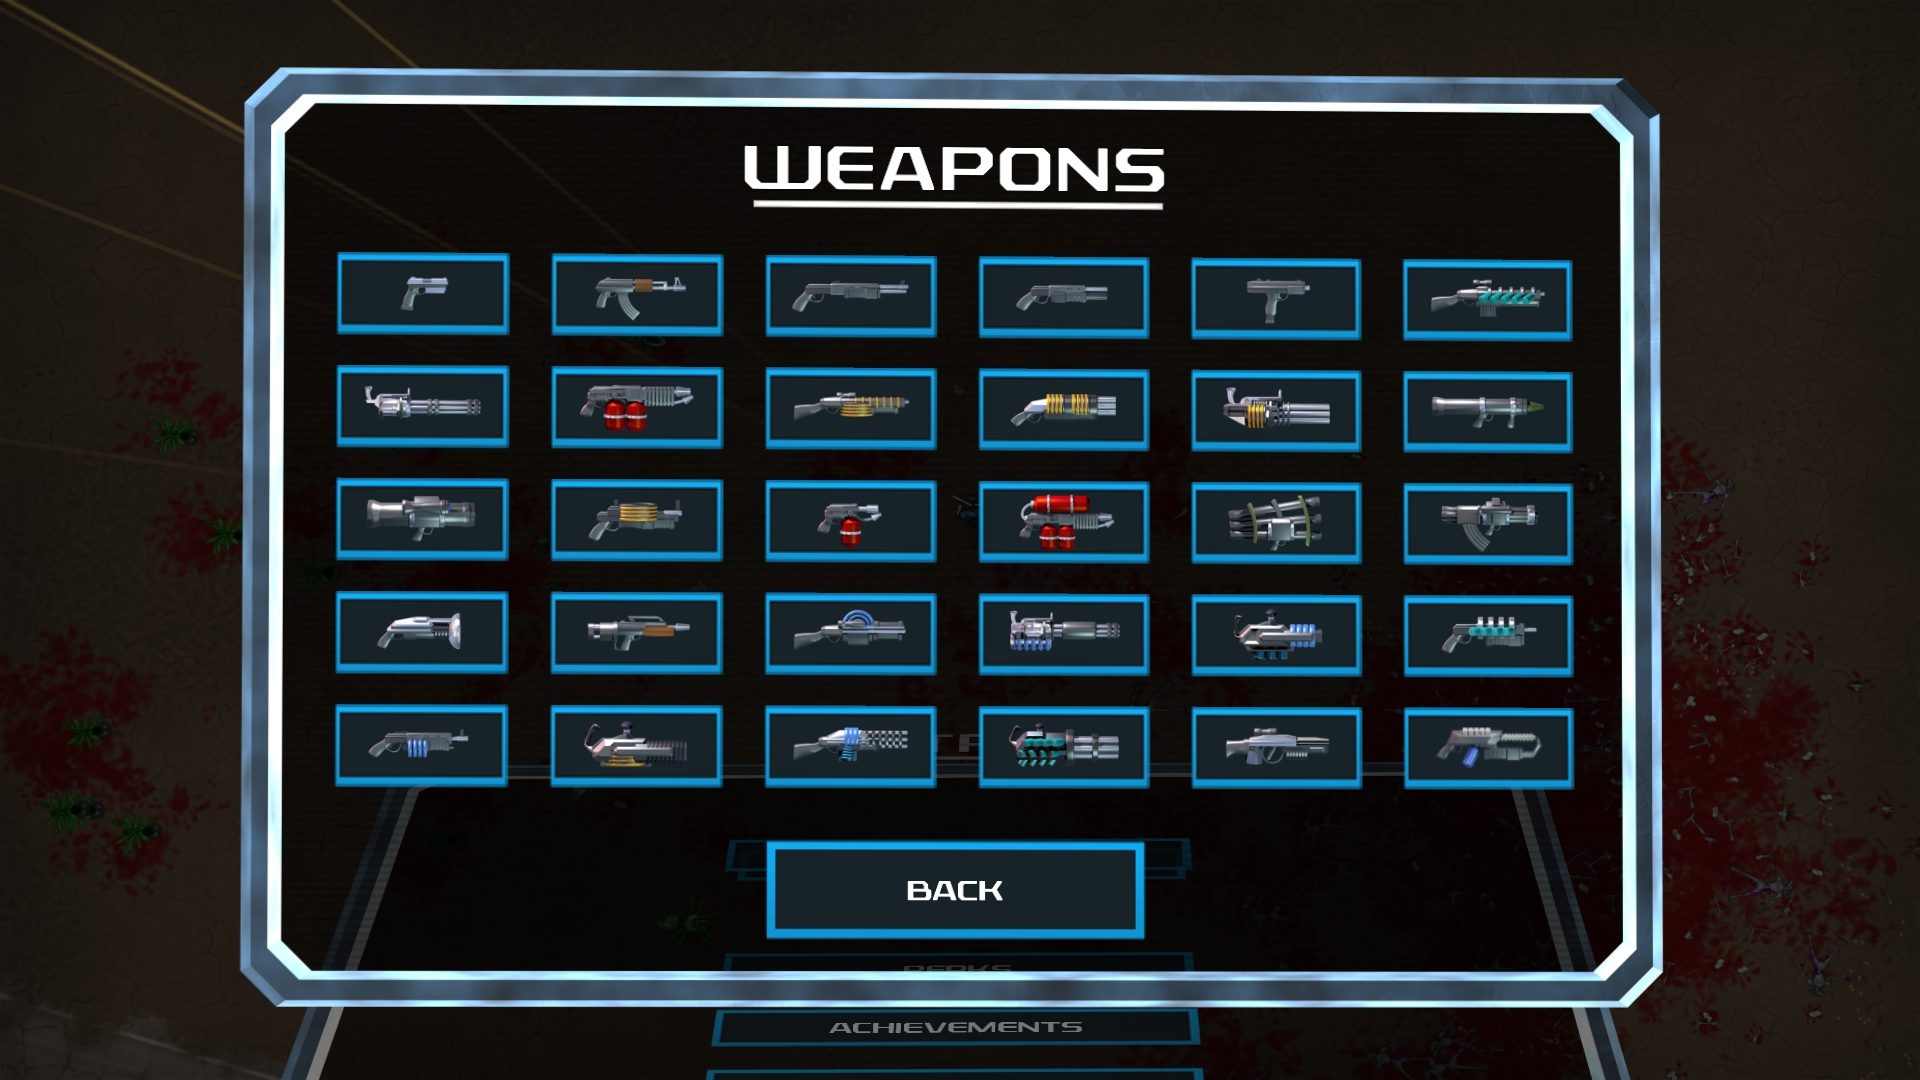 crimsonland_weapons_screen_1920x1080